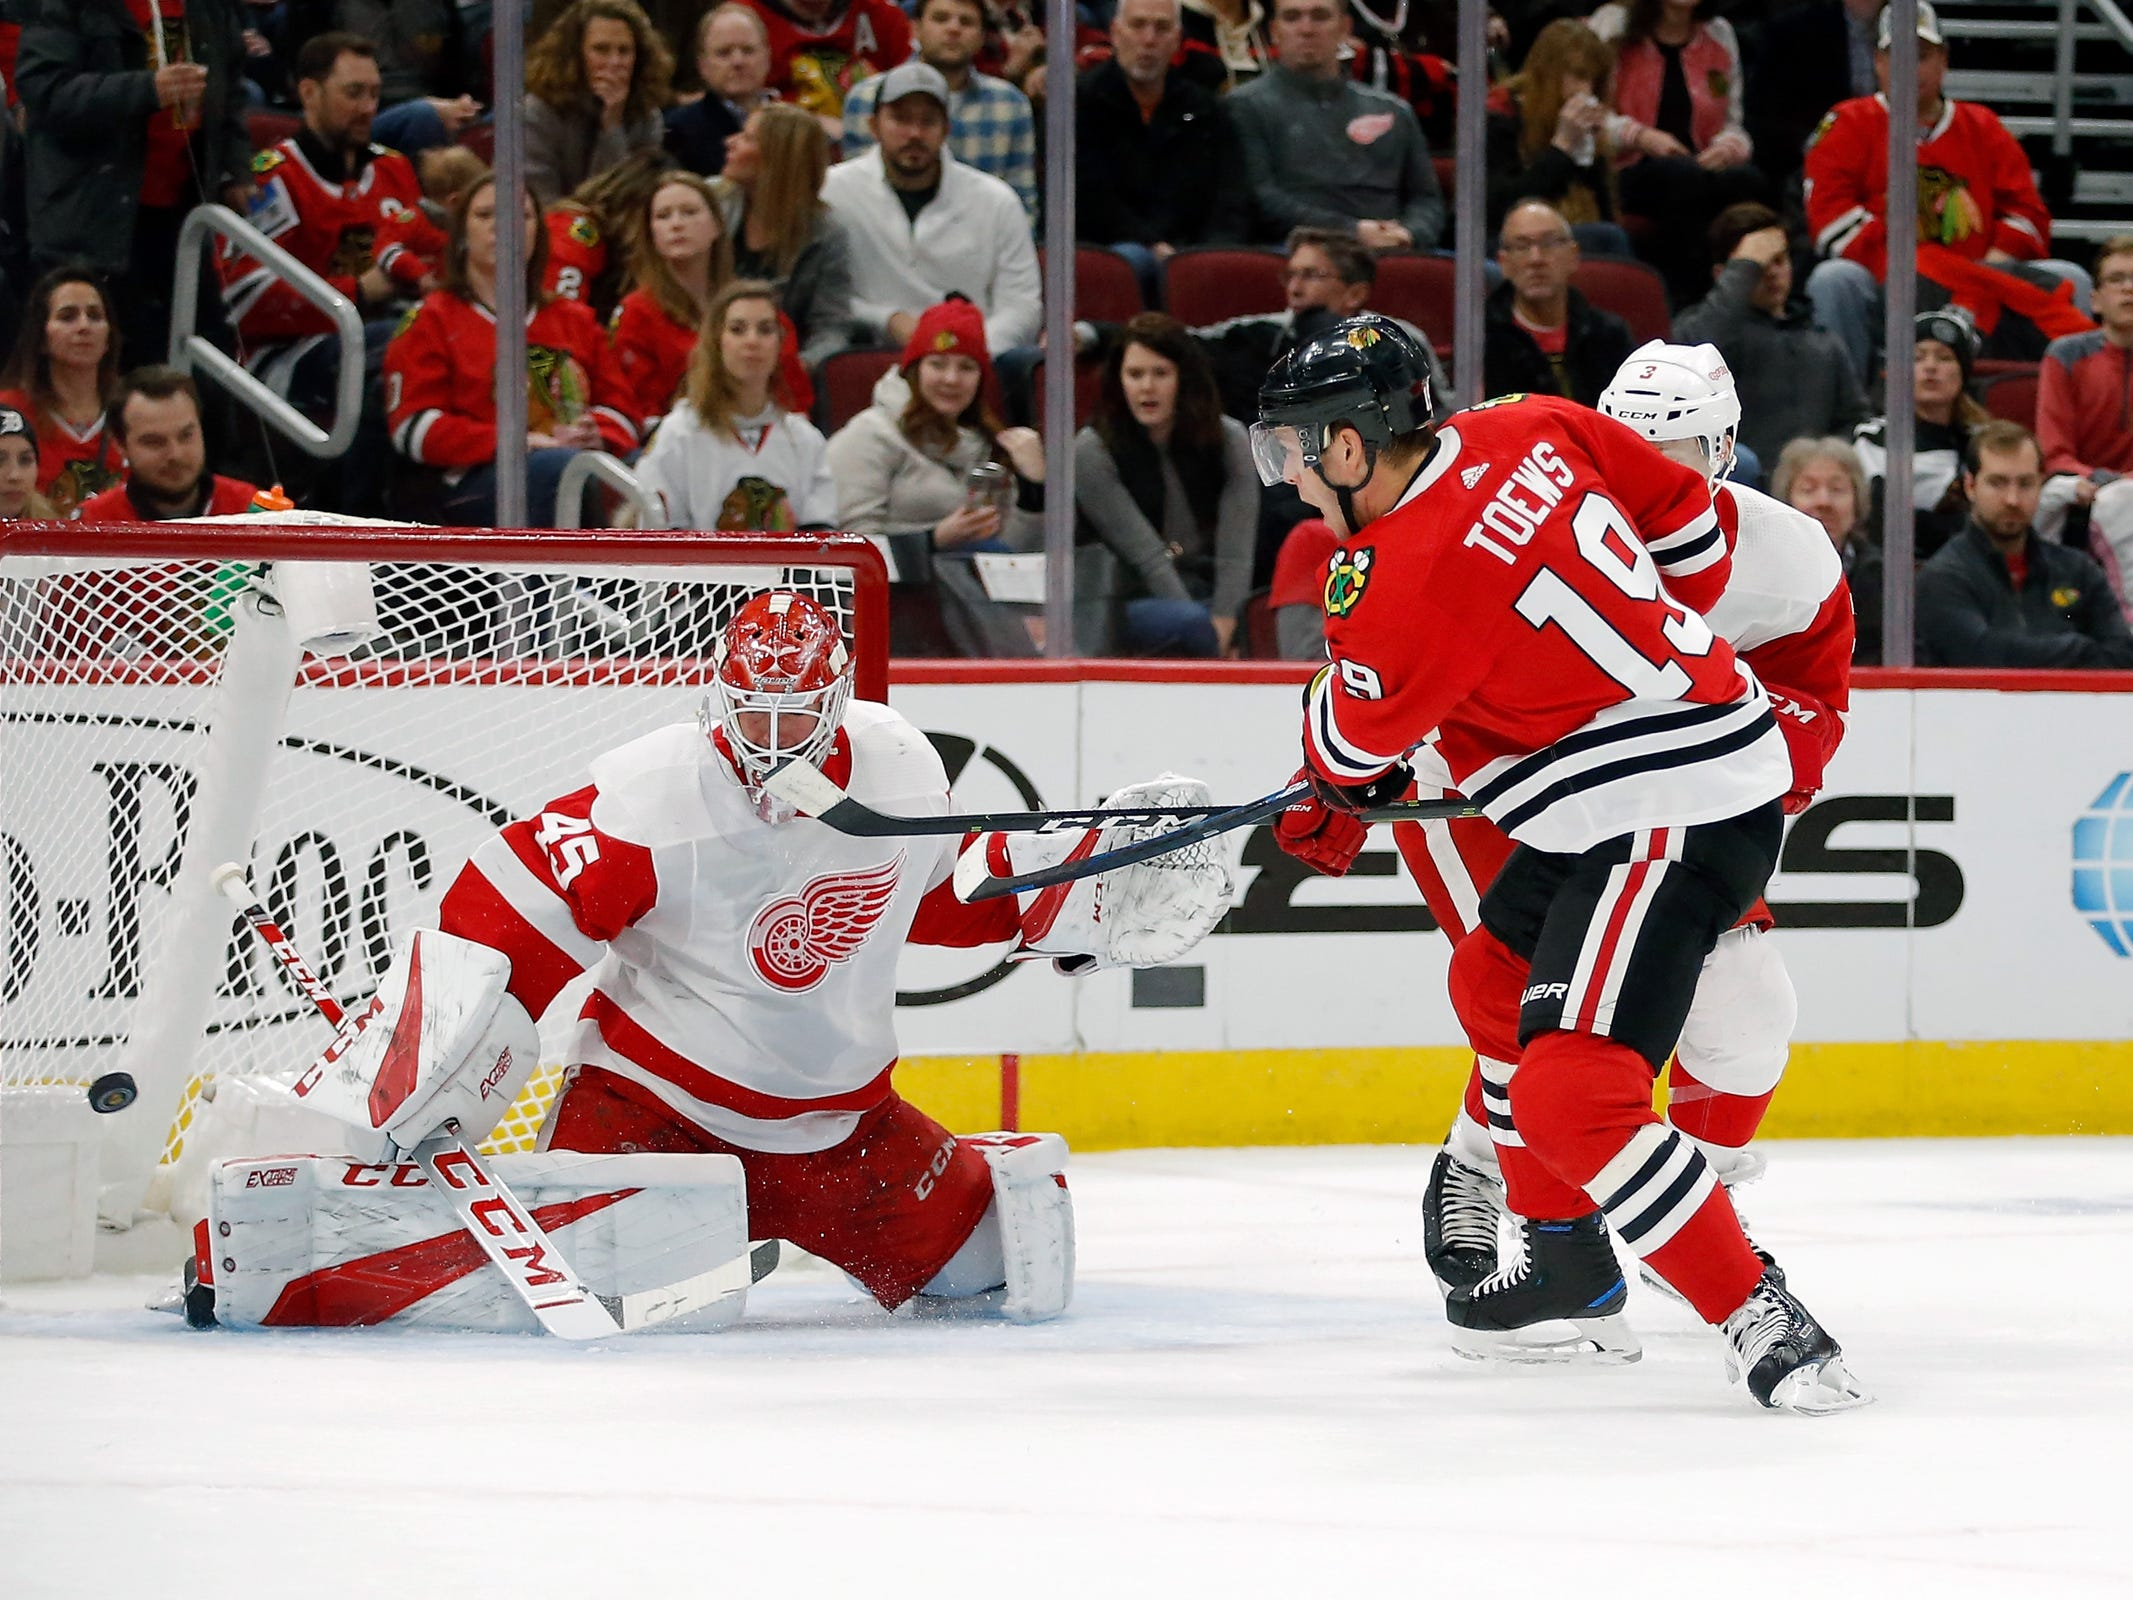 Chicago Blackhawks center Jonathan Toews shoots and misses against Detroit Red Wings goaltender Jonathan Bernier during the first period at United Center, Feb. 10, 2019.